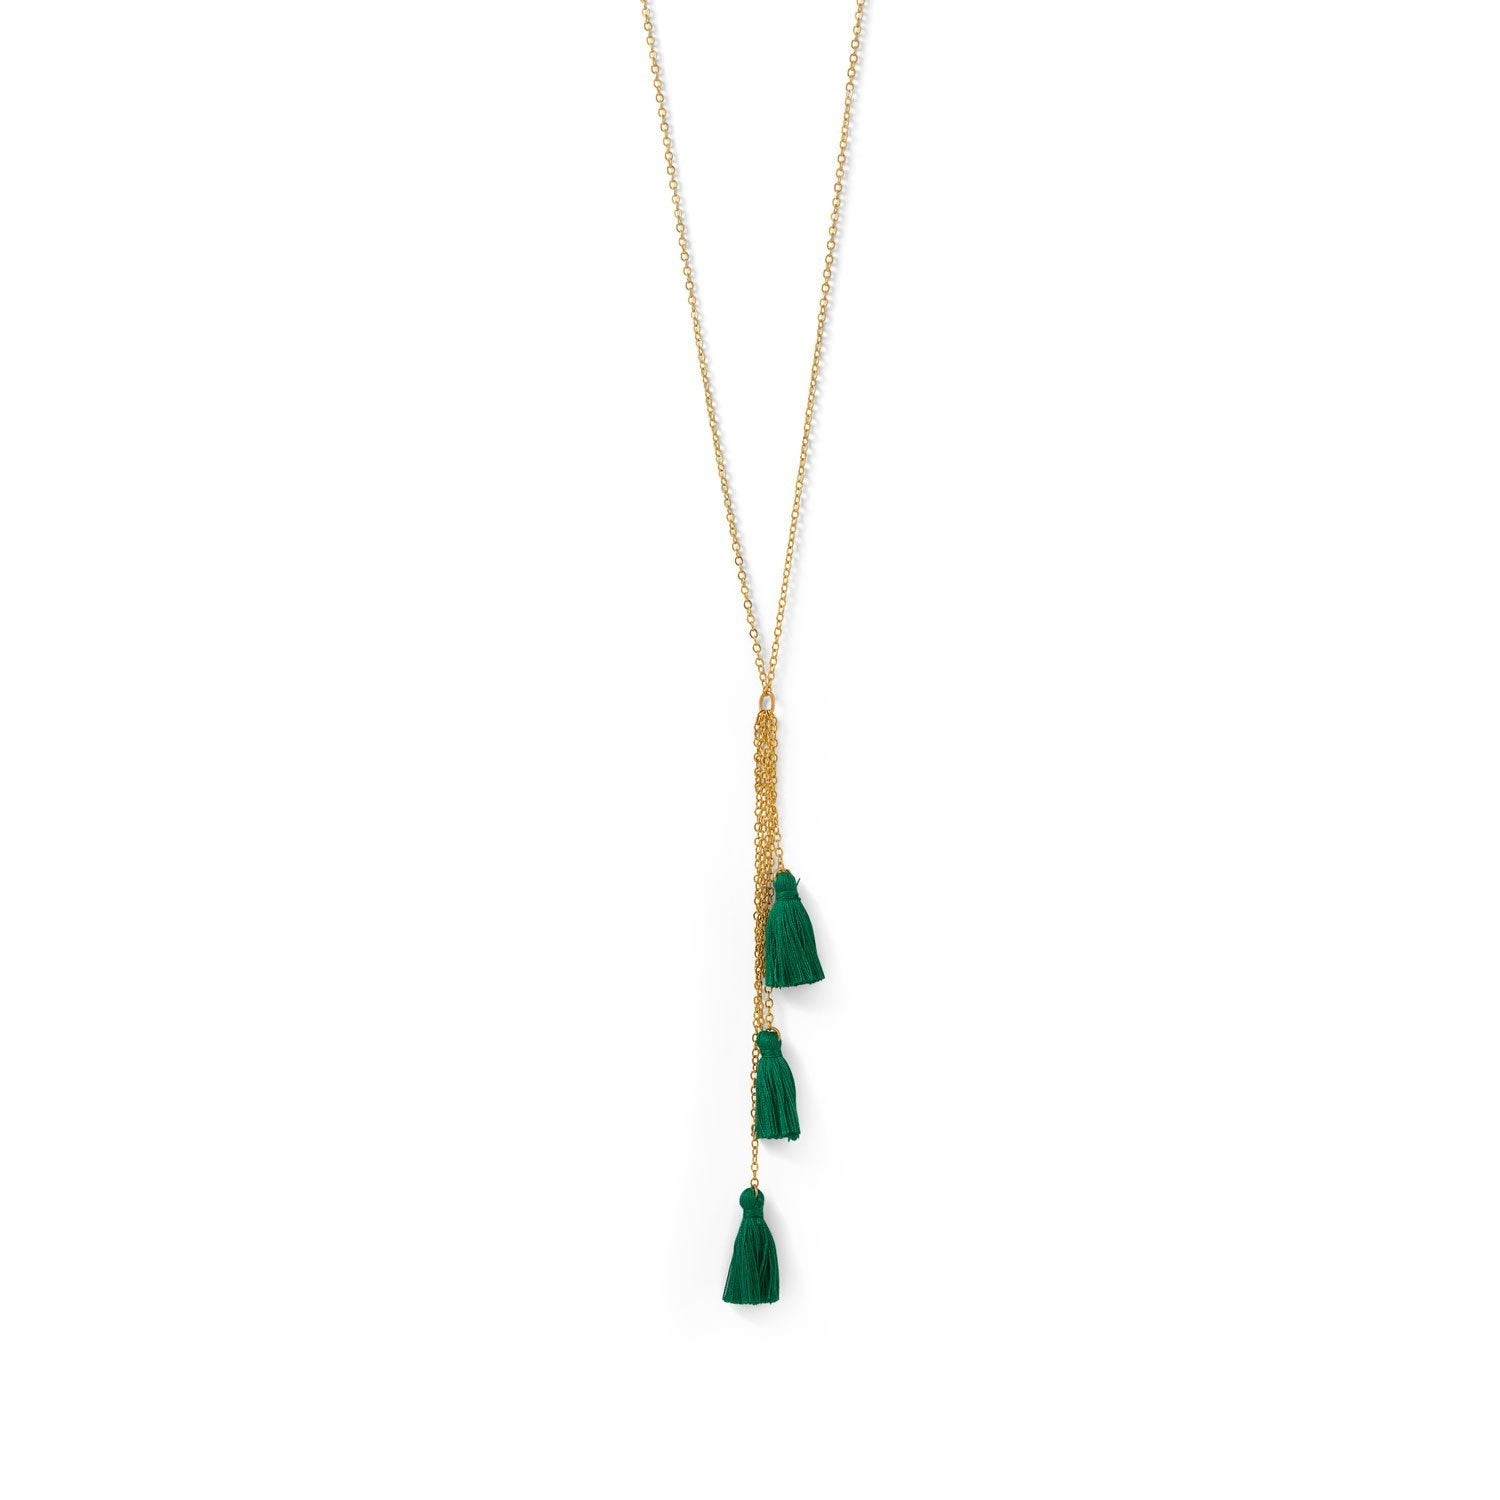 Necklaces Threaded Tassel Necklace - GLITIC